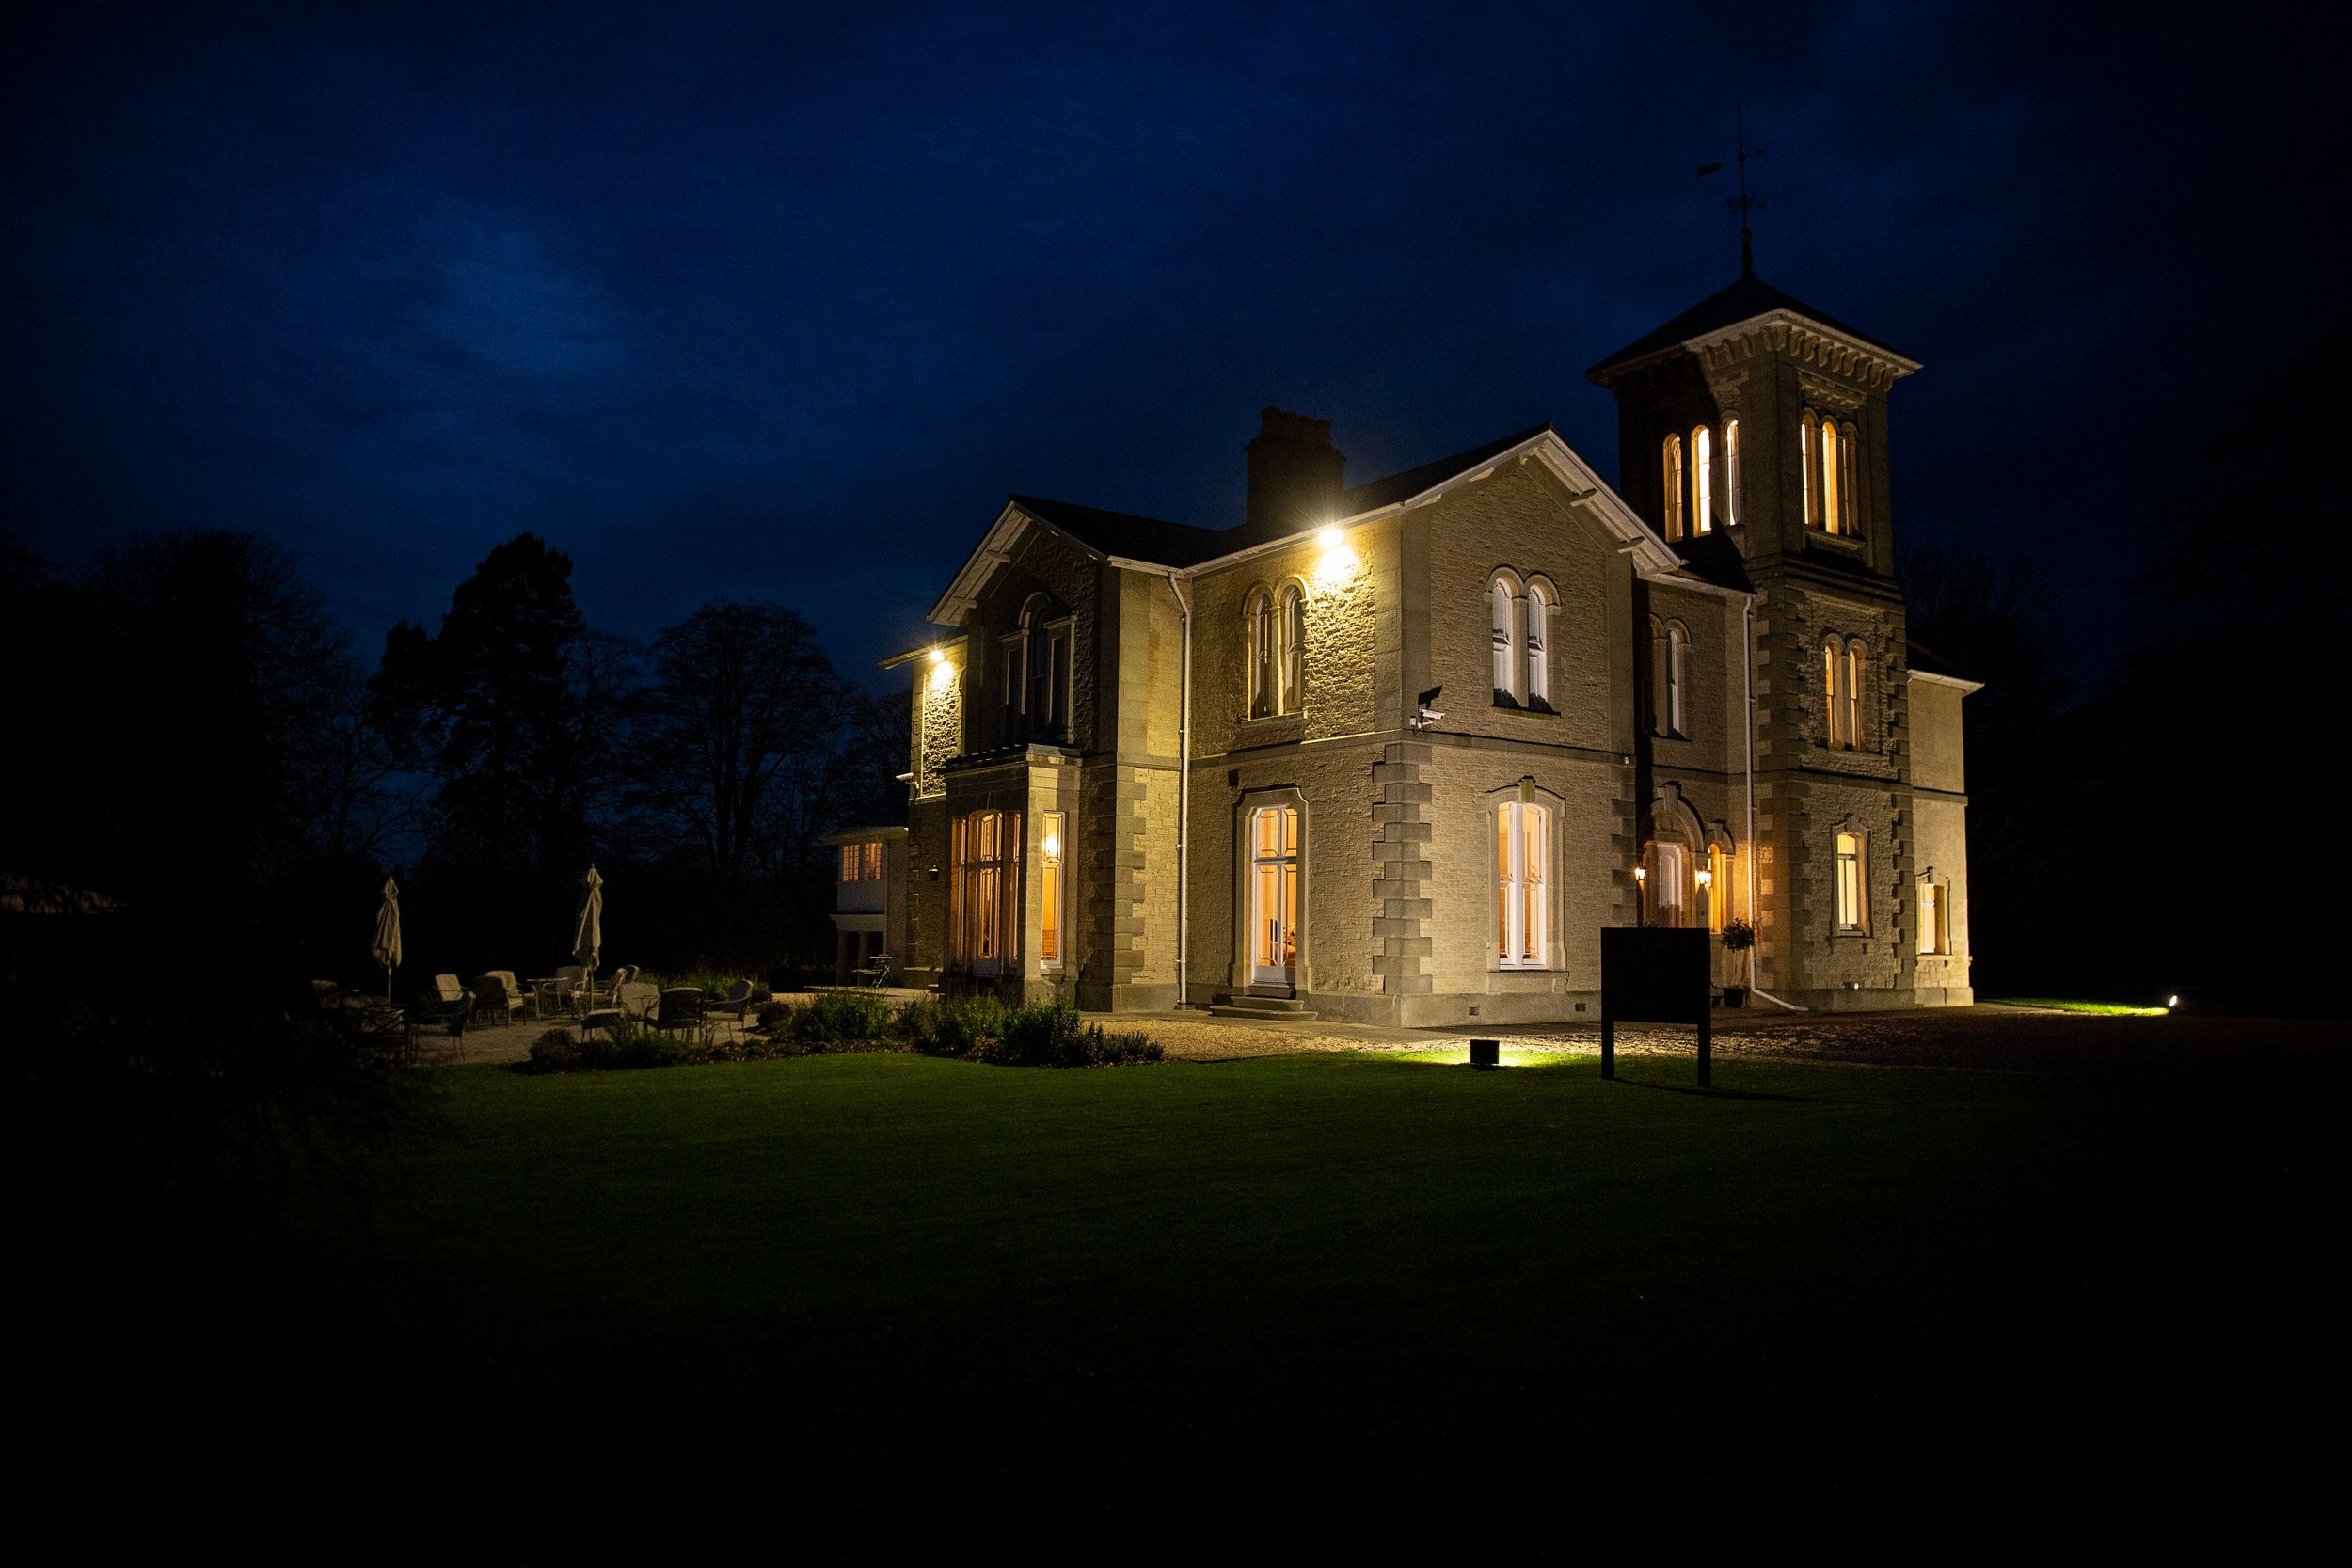 St. Tewdrics House lit up at night